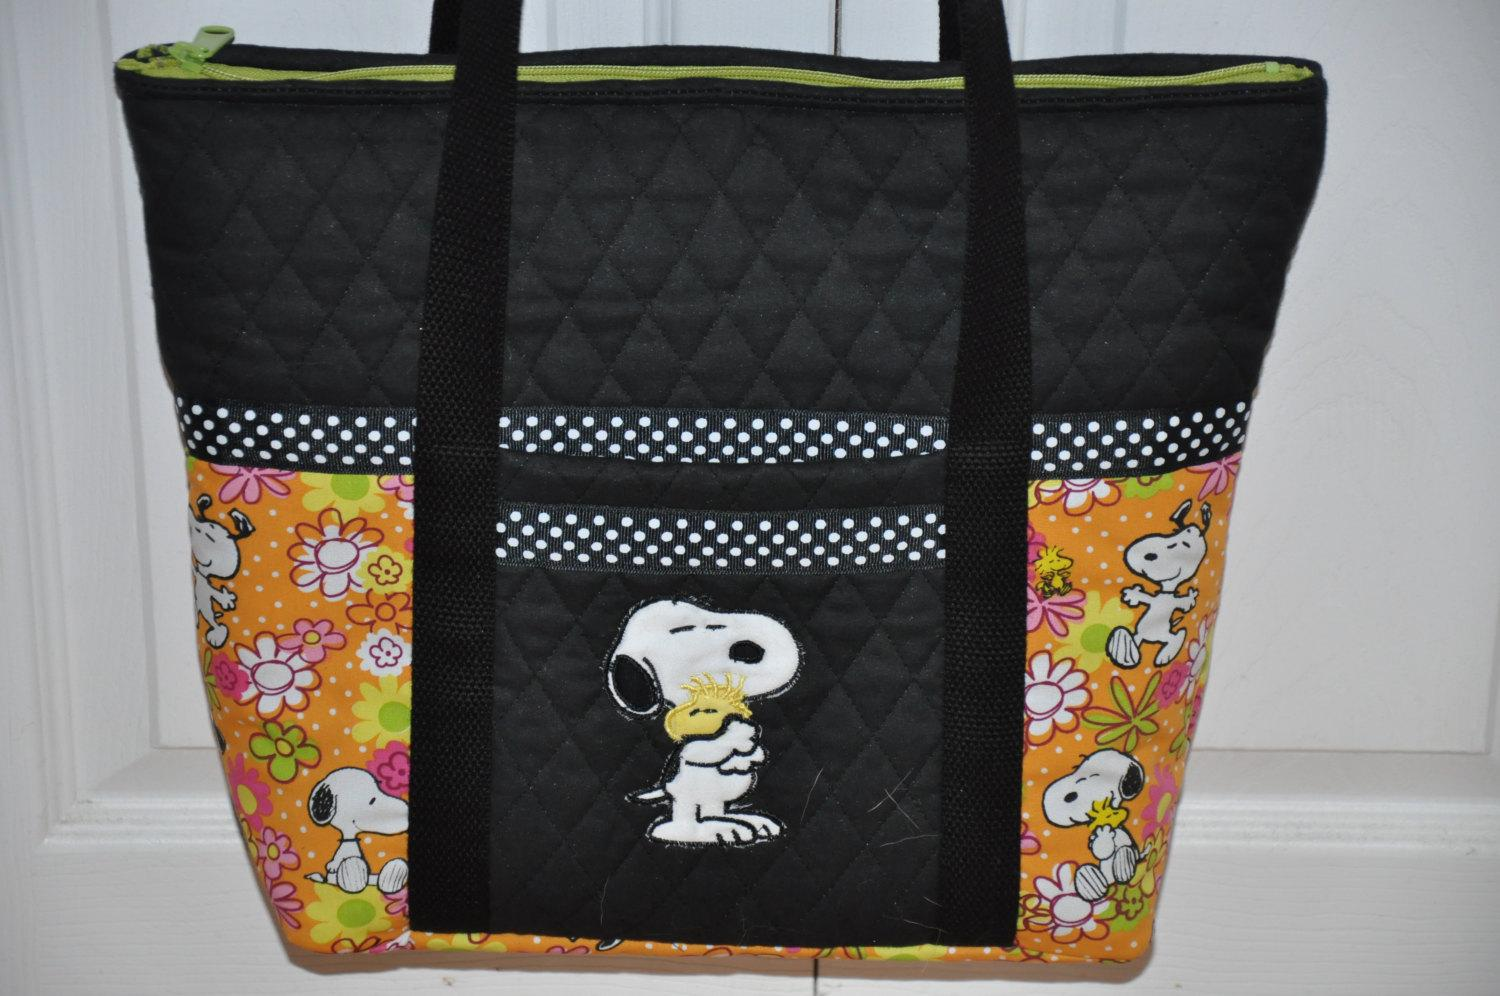 Bag with Snoopy with small friend embroidery design